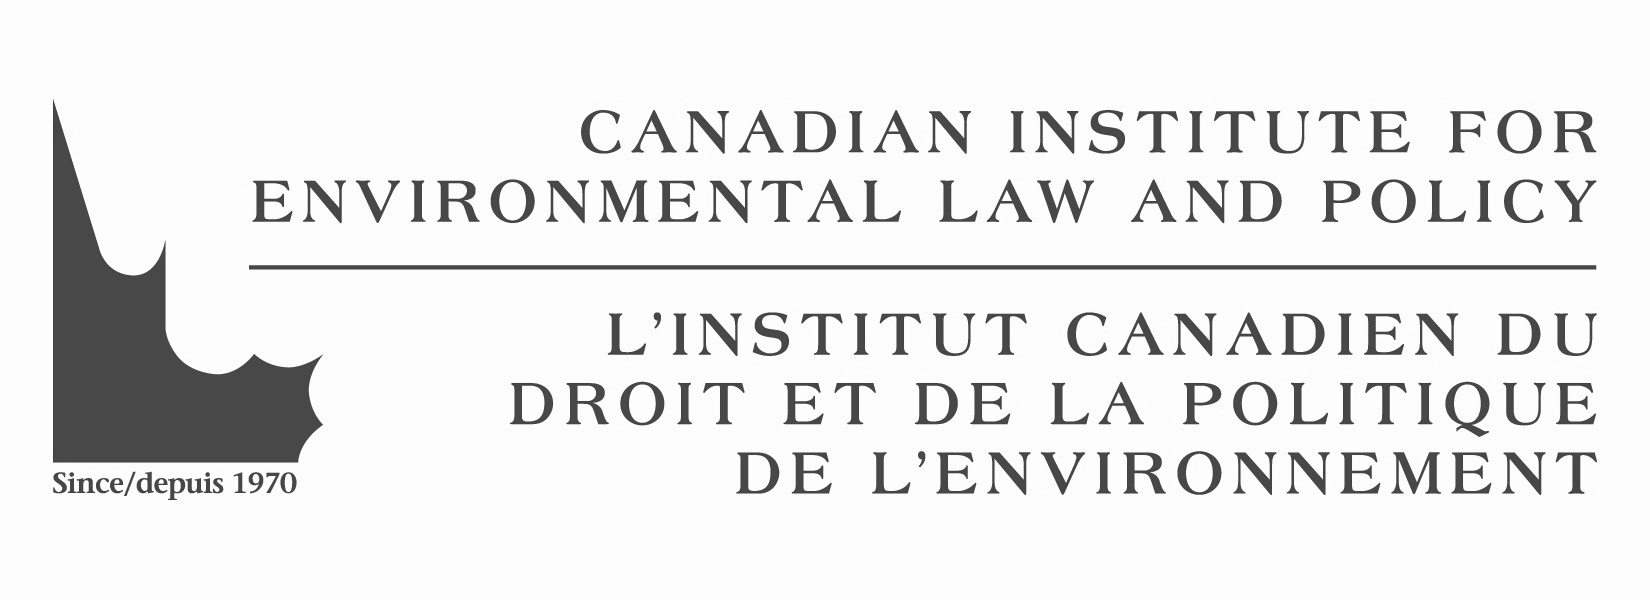 Acknowledgements The author and the Canadian Institute for Environmental Law and Policy (CIELAP) would like to offer our sincere thanks to The Henry and Berenice Kaufmann Foundation, as well as to an